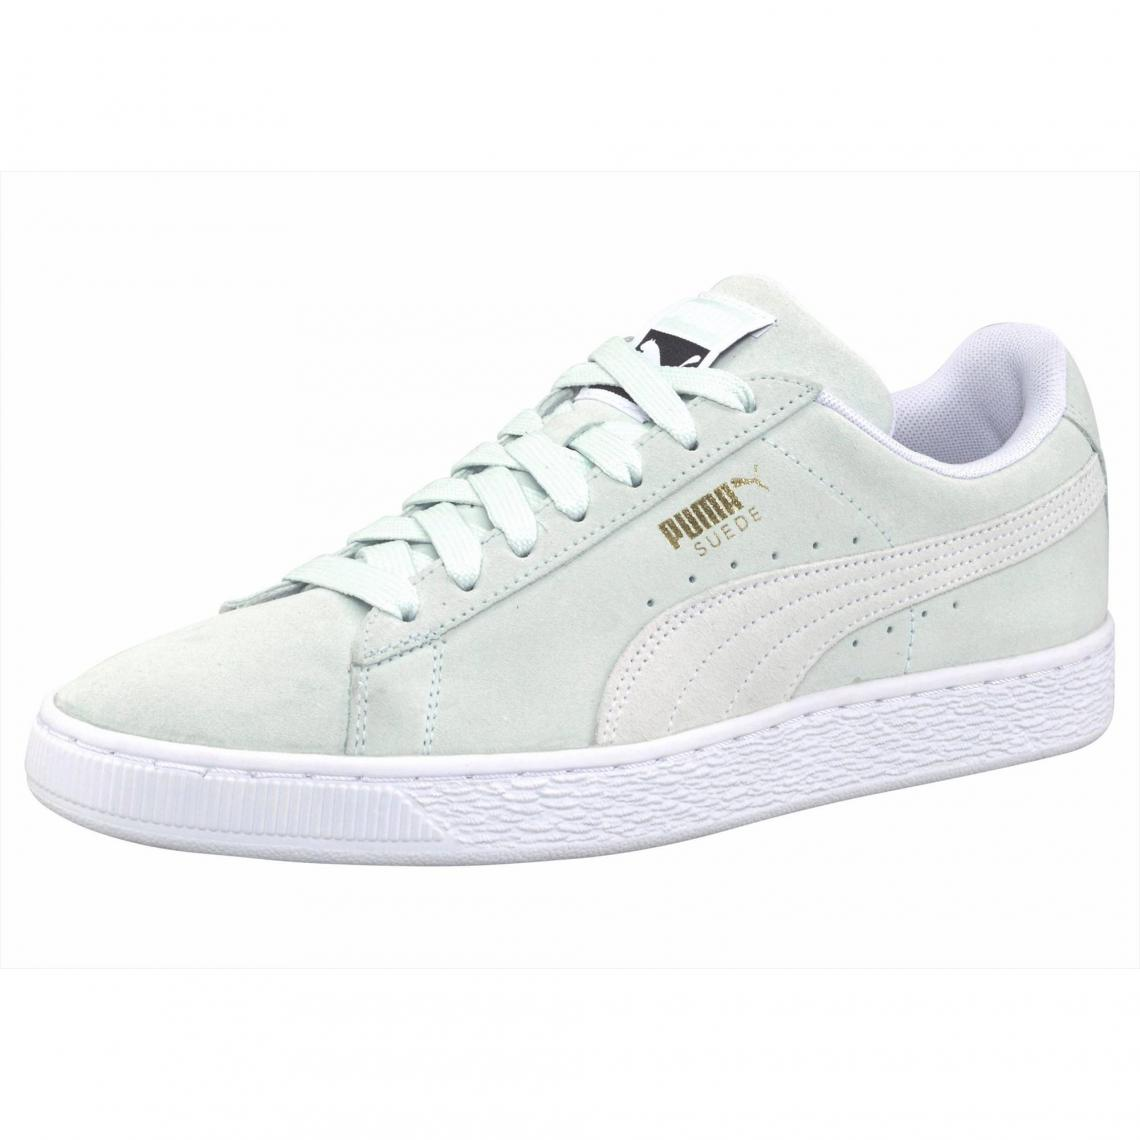 Menthe3 W Sneakers Homme Puma Classic Suede Suisses dxBrCoe